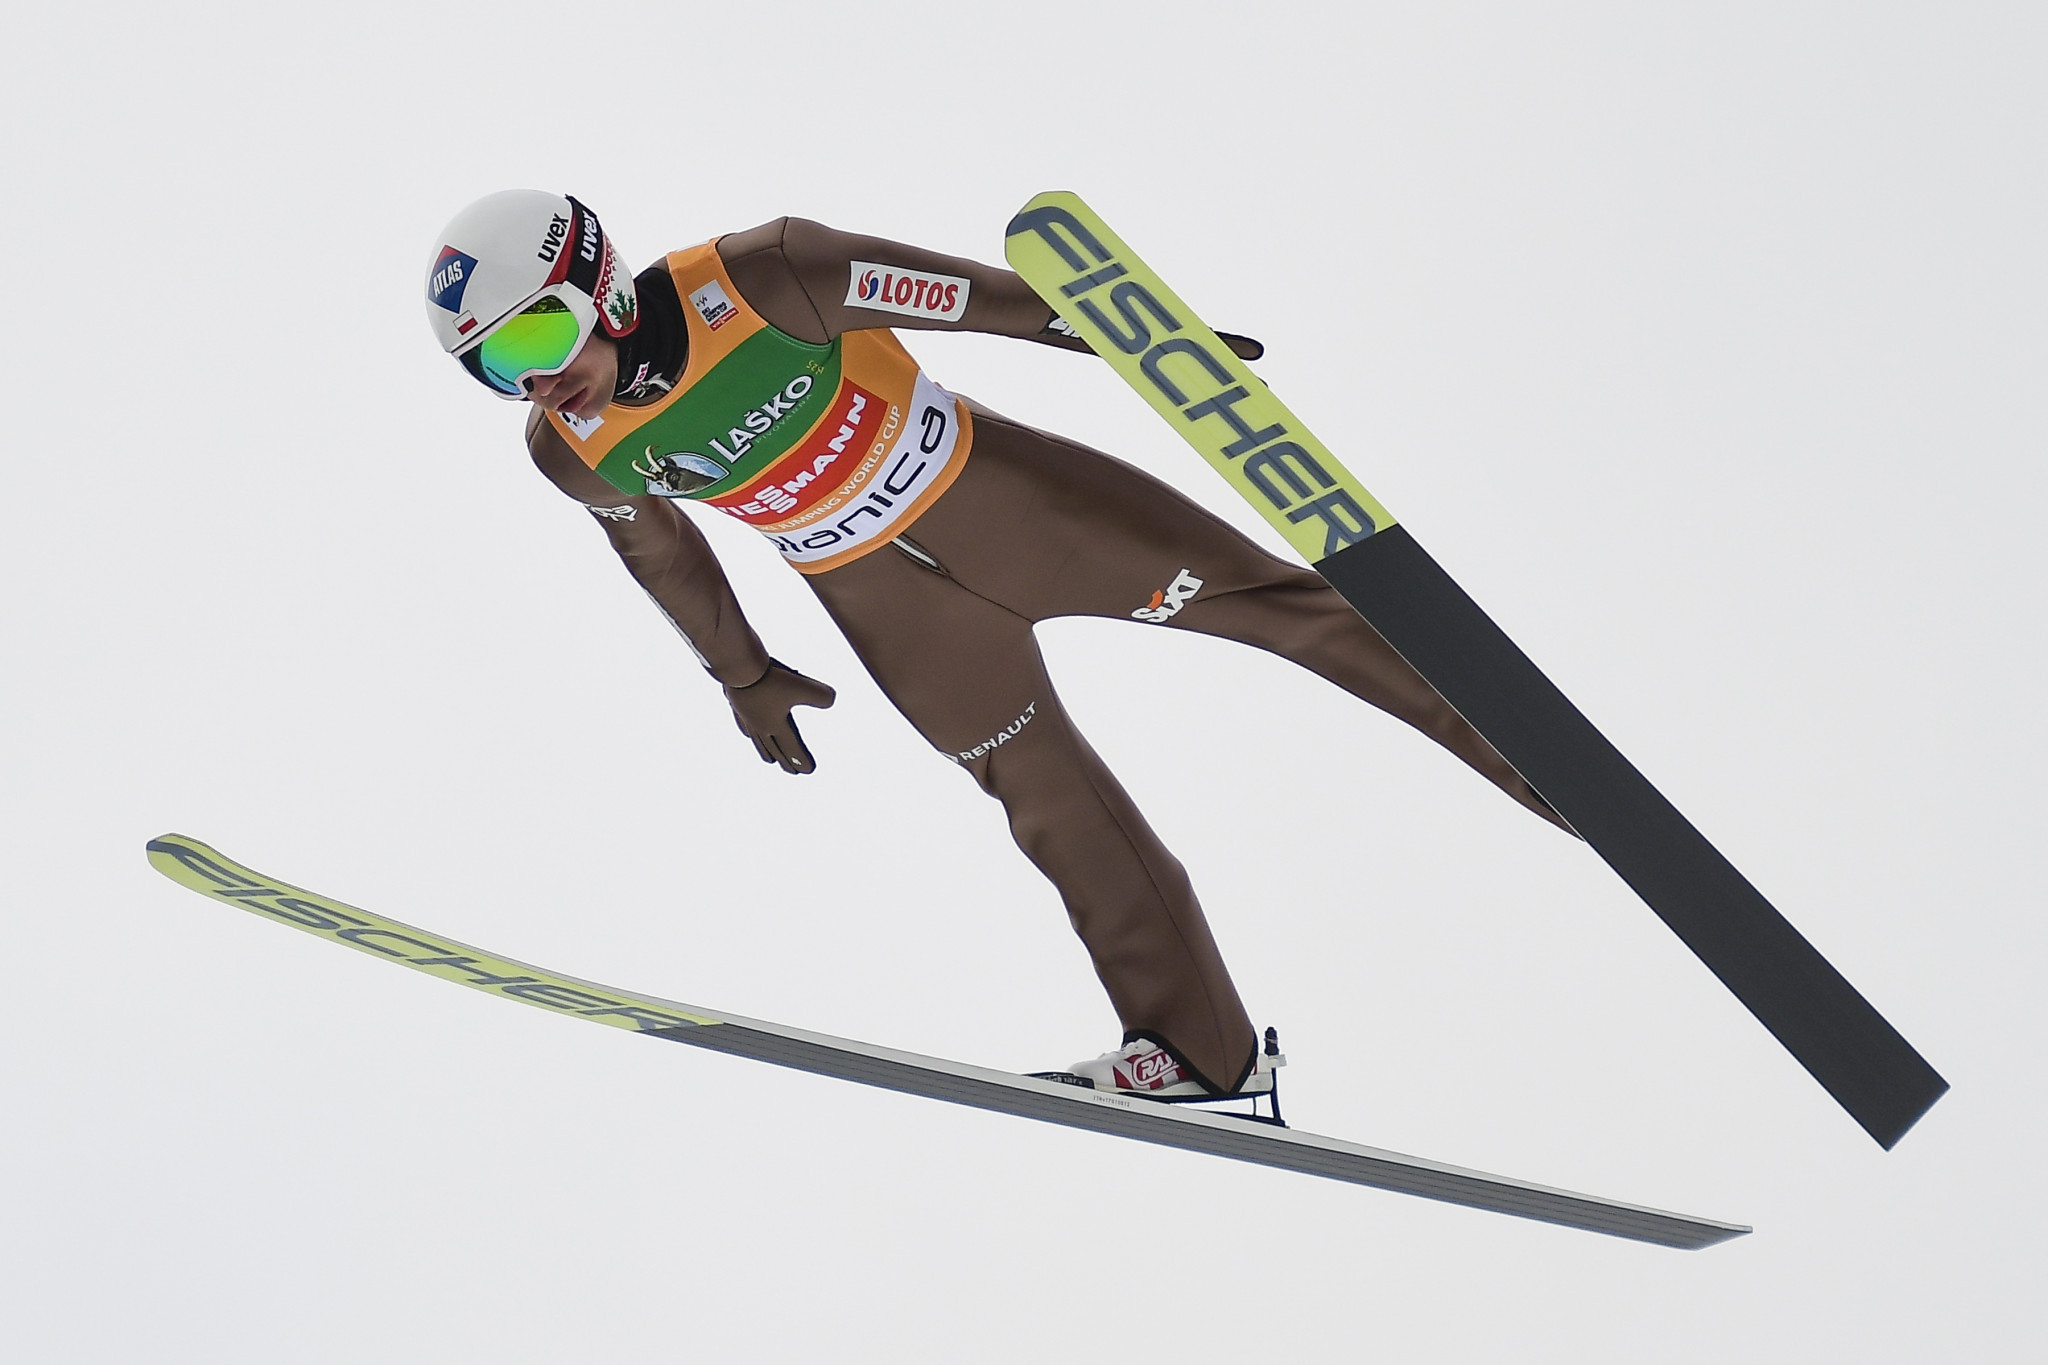 Stoch seeking third FIS Ski Jumping title as World Cup starts in Wisla